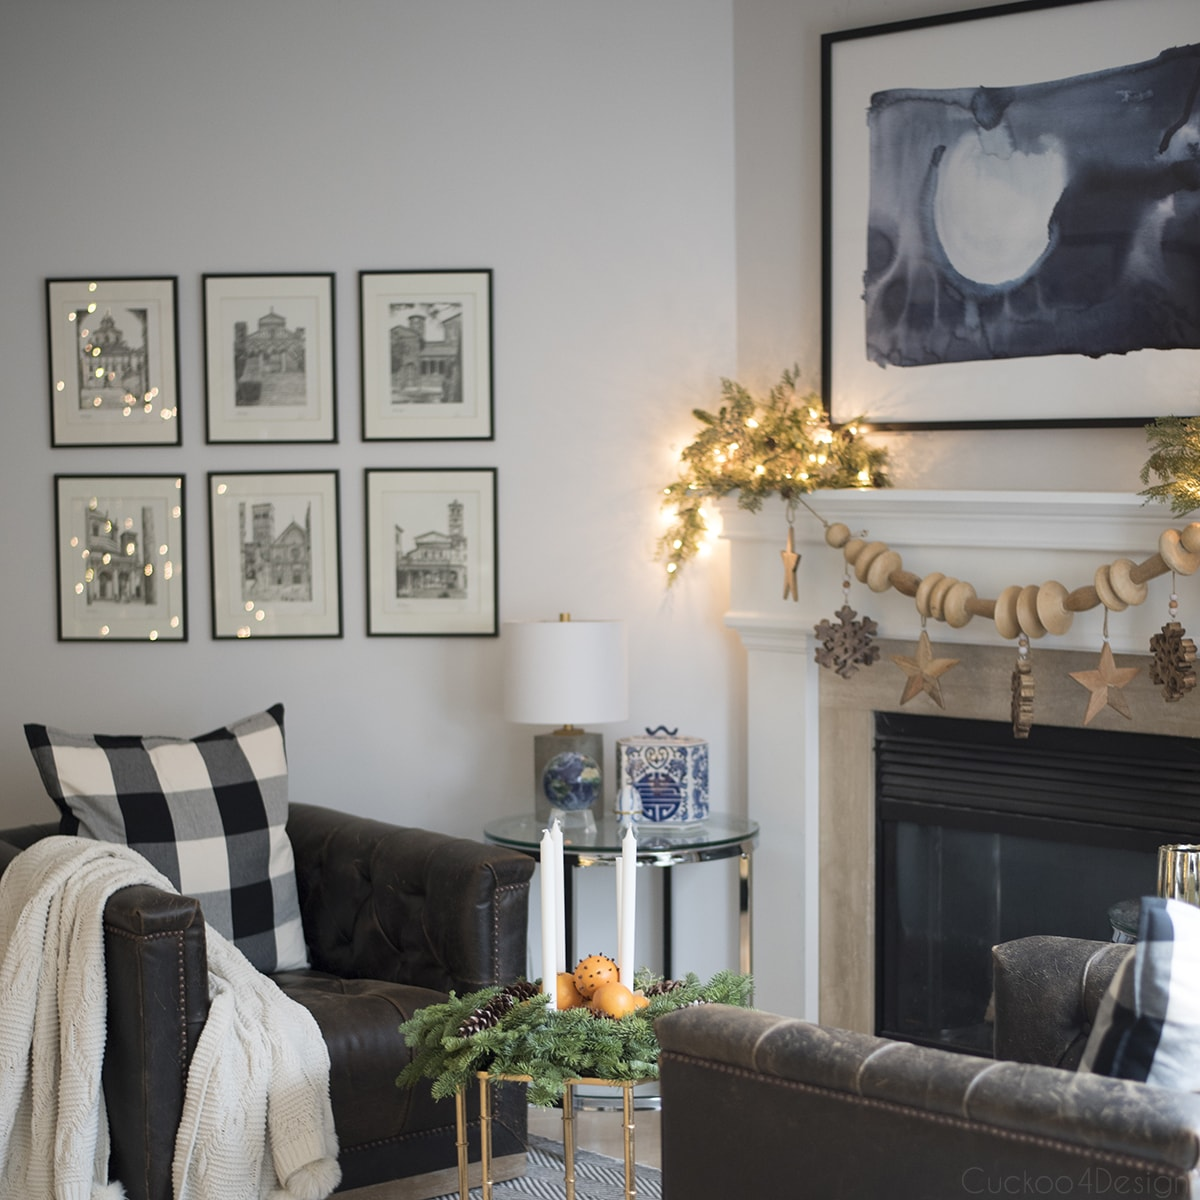 fireplace wooden garland as natural Christmas decorations